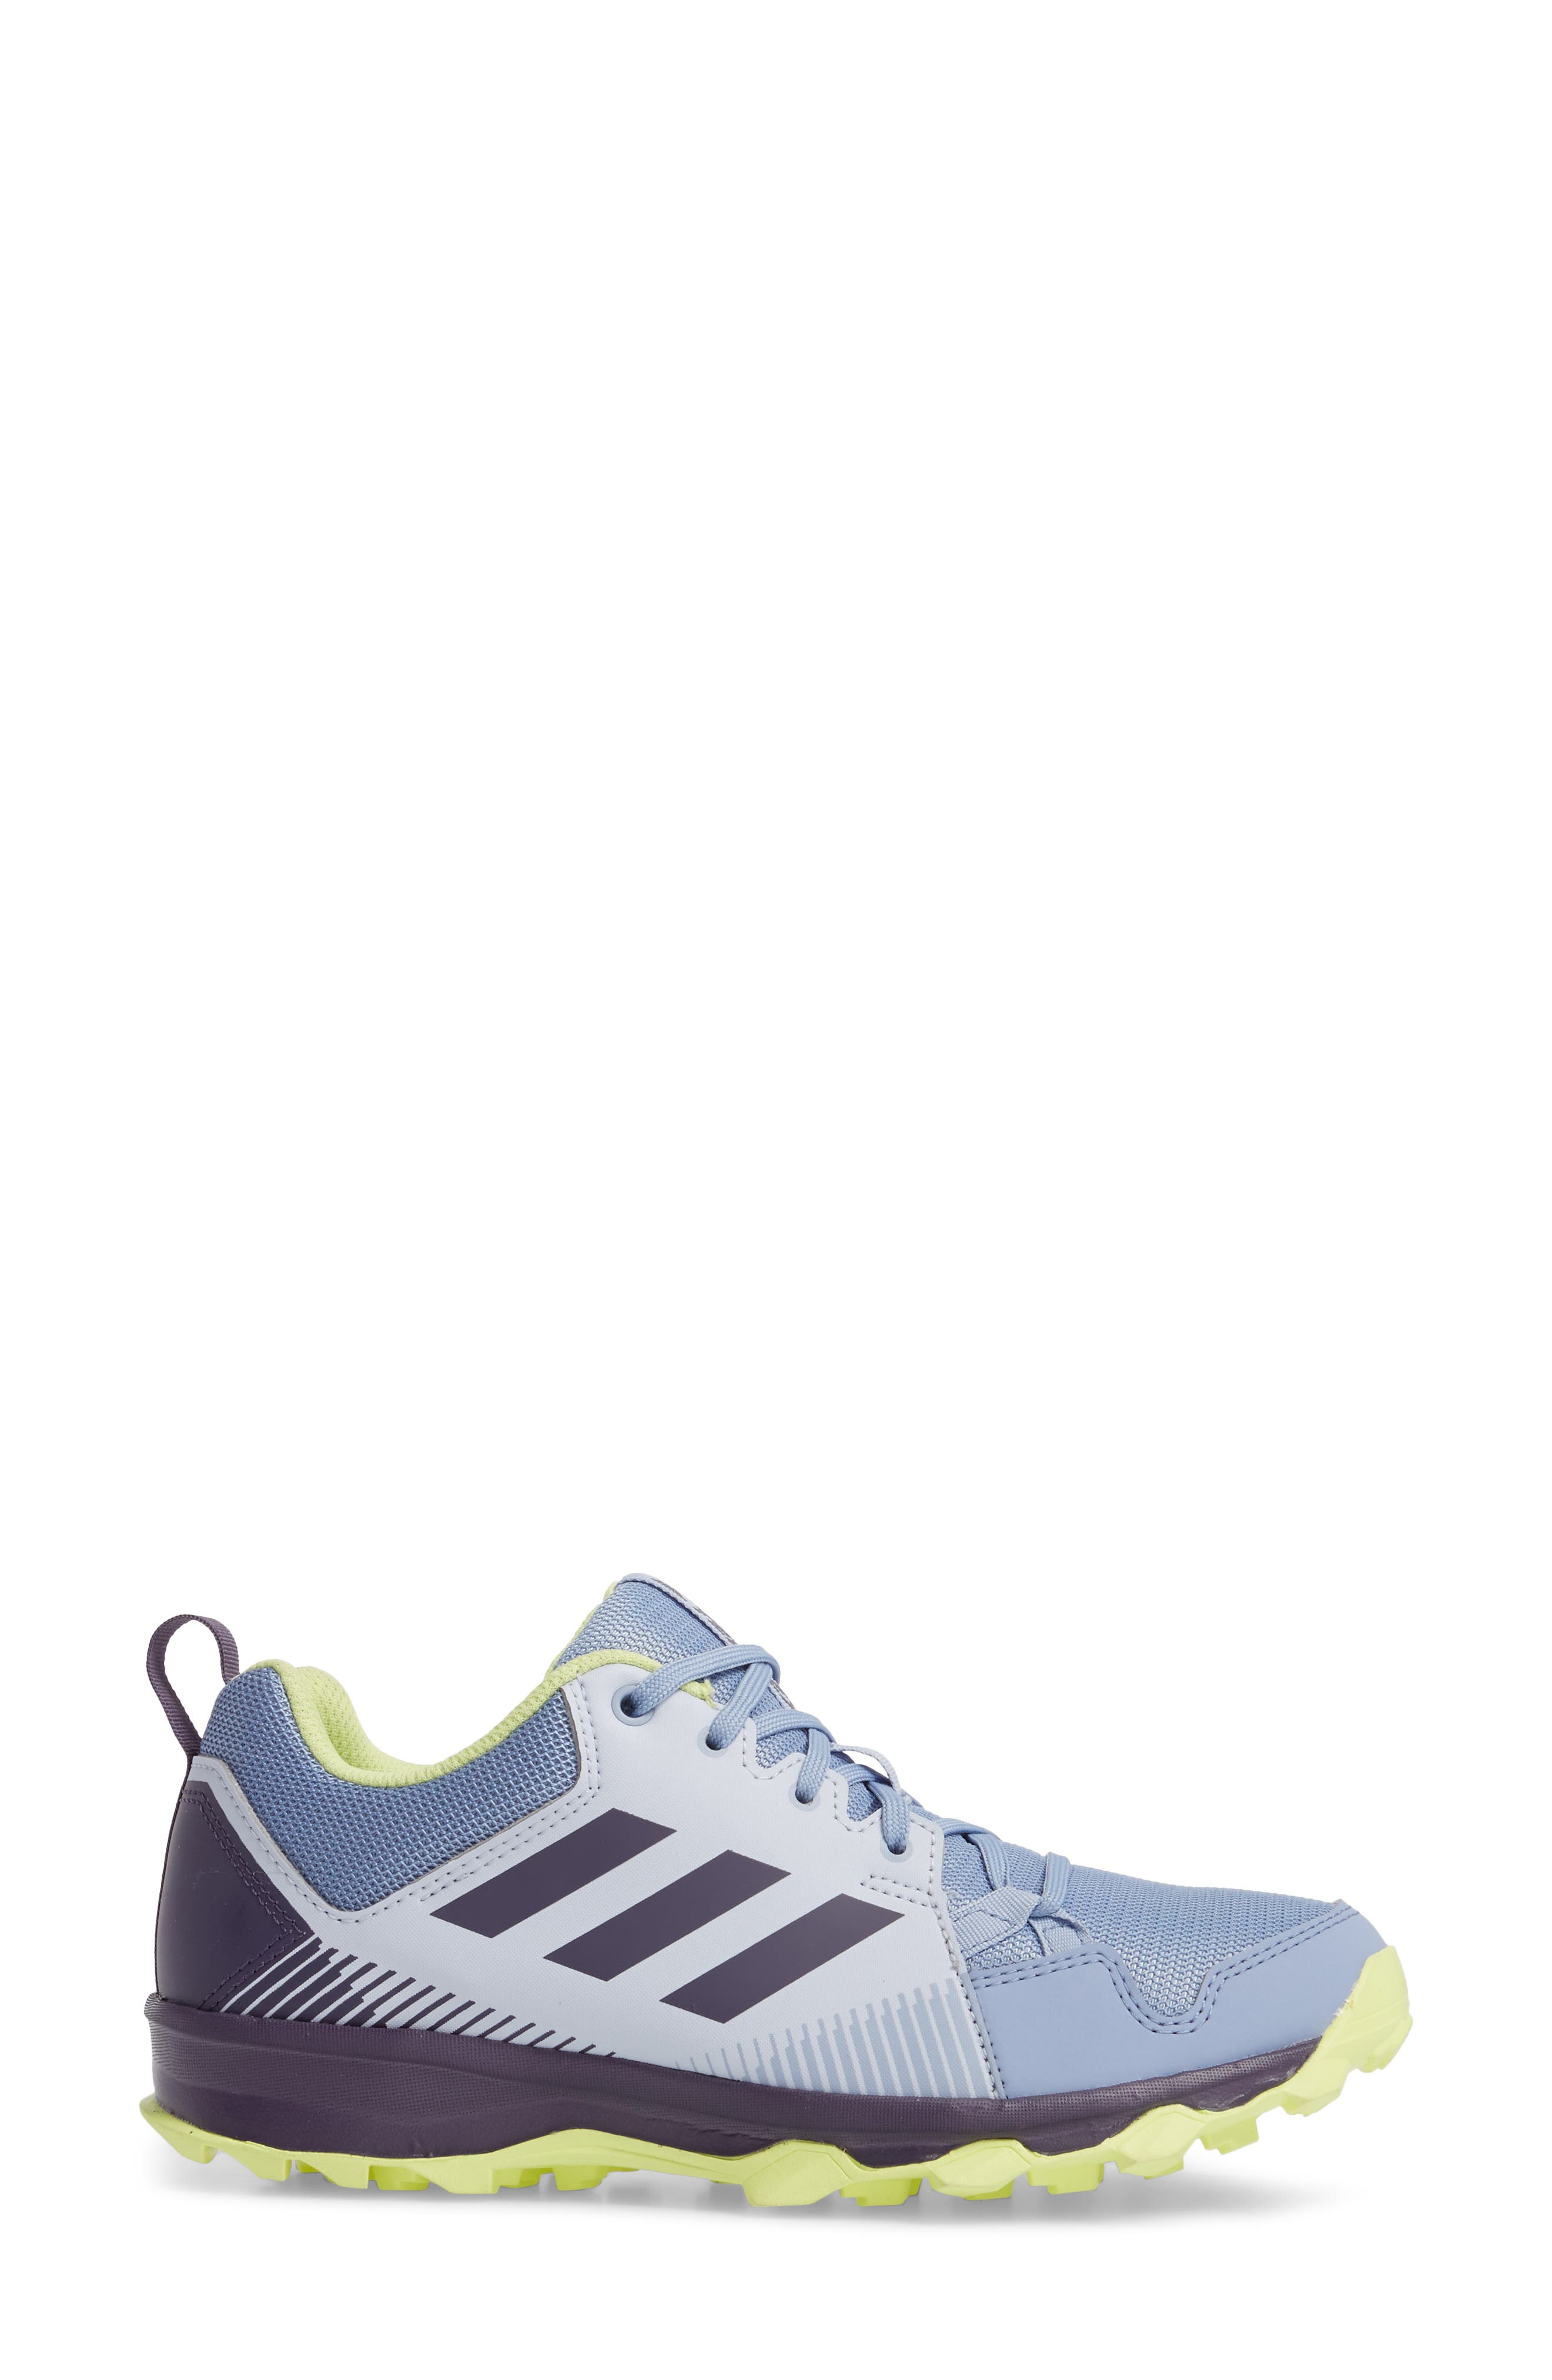 'Tracerocker' Athletic Shoe,                             Alternate thumbnail 3, color,                             Aero Blue/ Purple/ Yellow